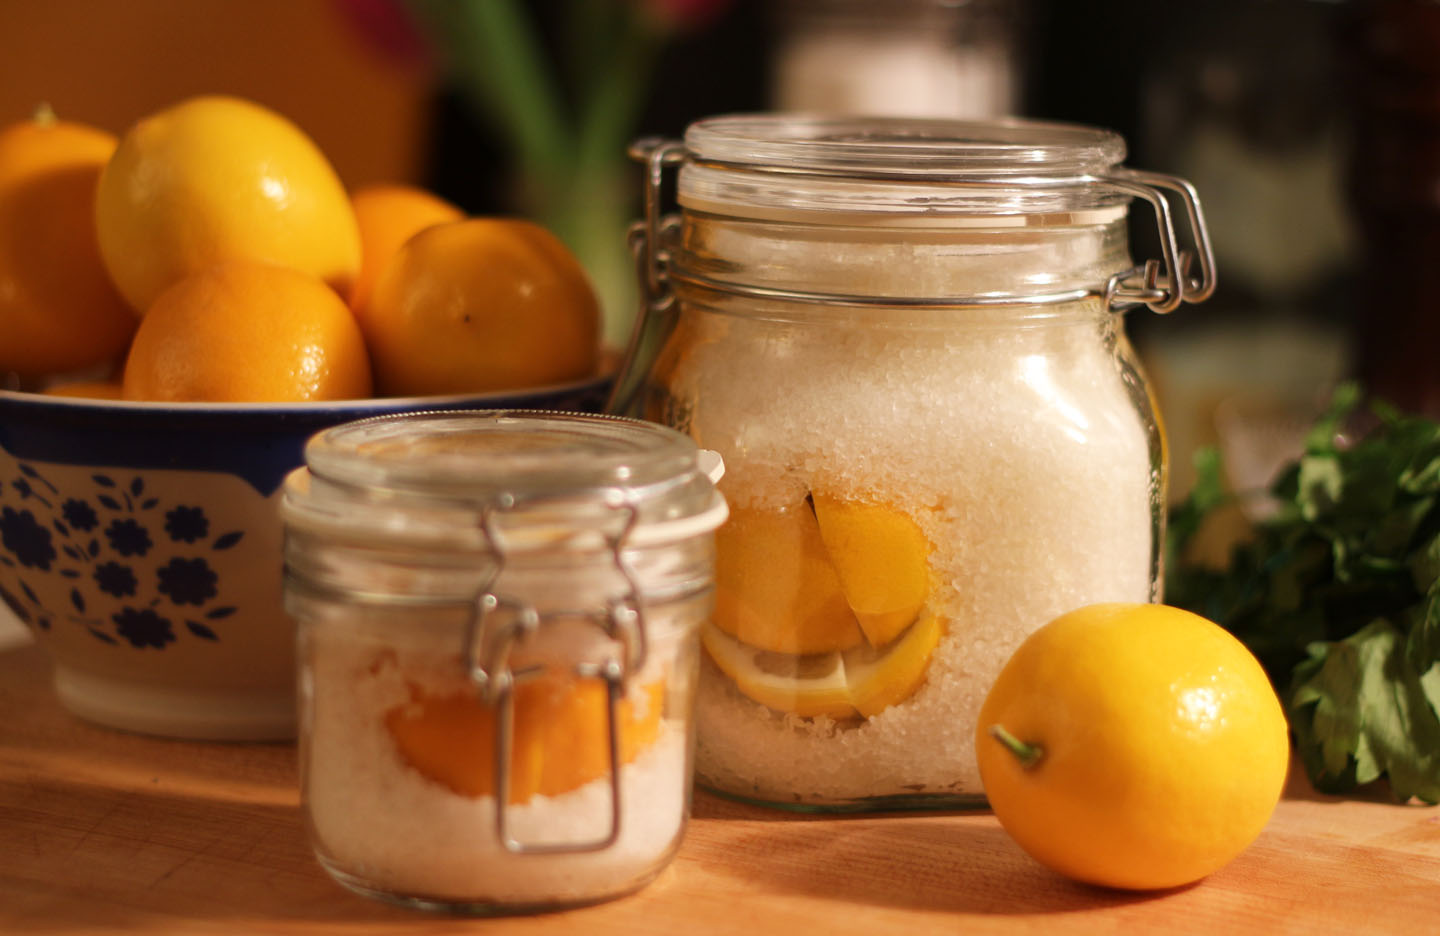 66 Square Feet (Plus): Preserved lemons